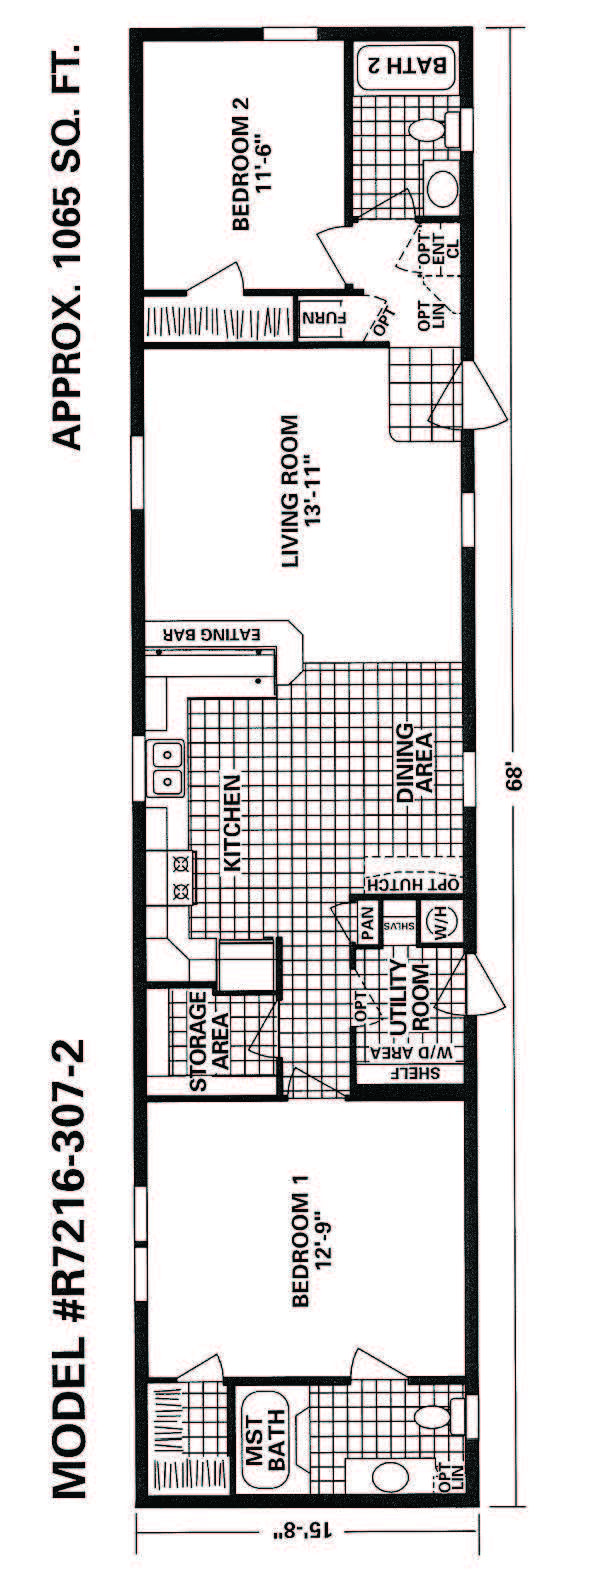 e679677e3dd24301e0453834bf59f38e single wide main street 219 best home design, single wide images on pinterest single Simple Wiring Schematics at gsmportal.co